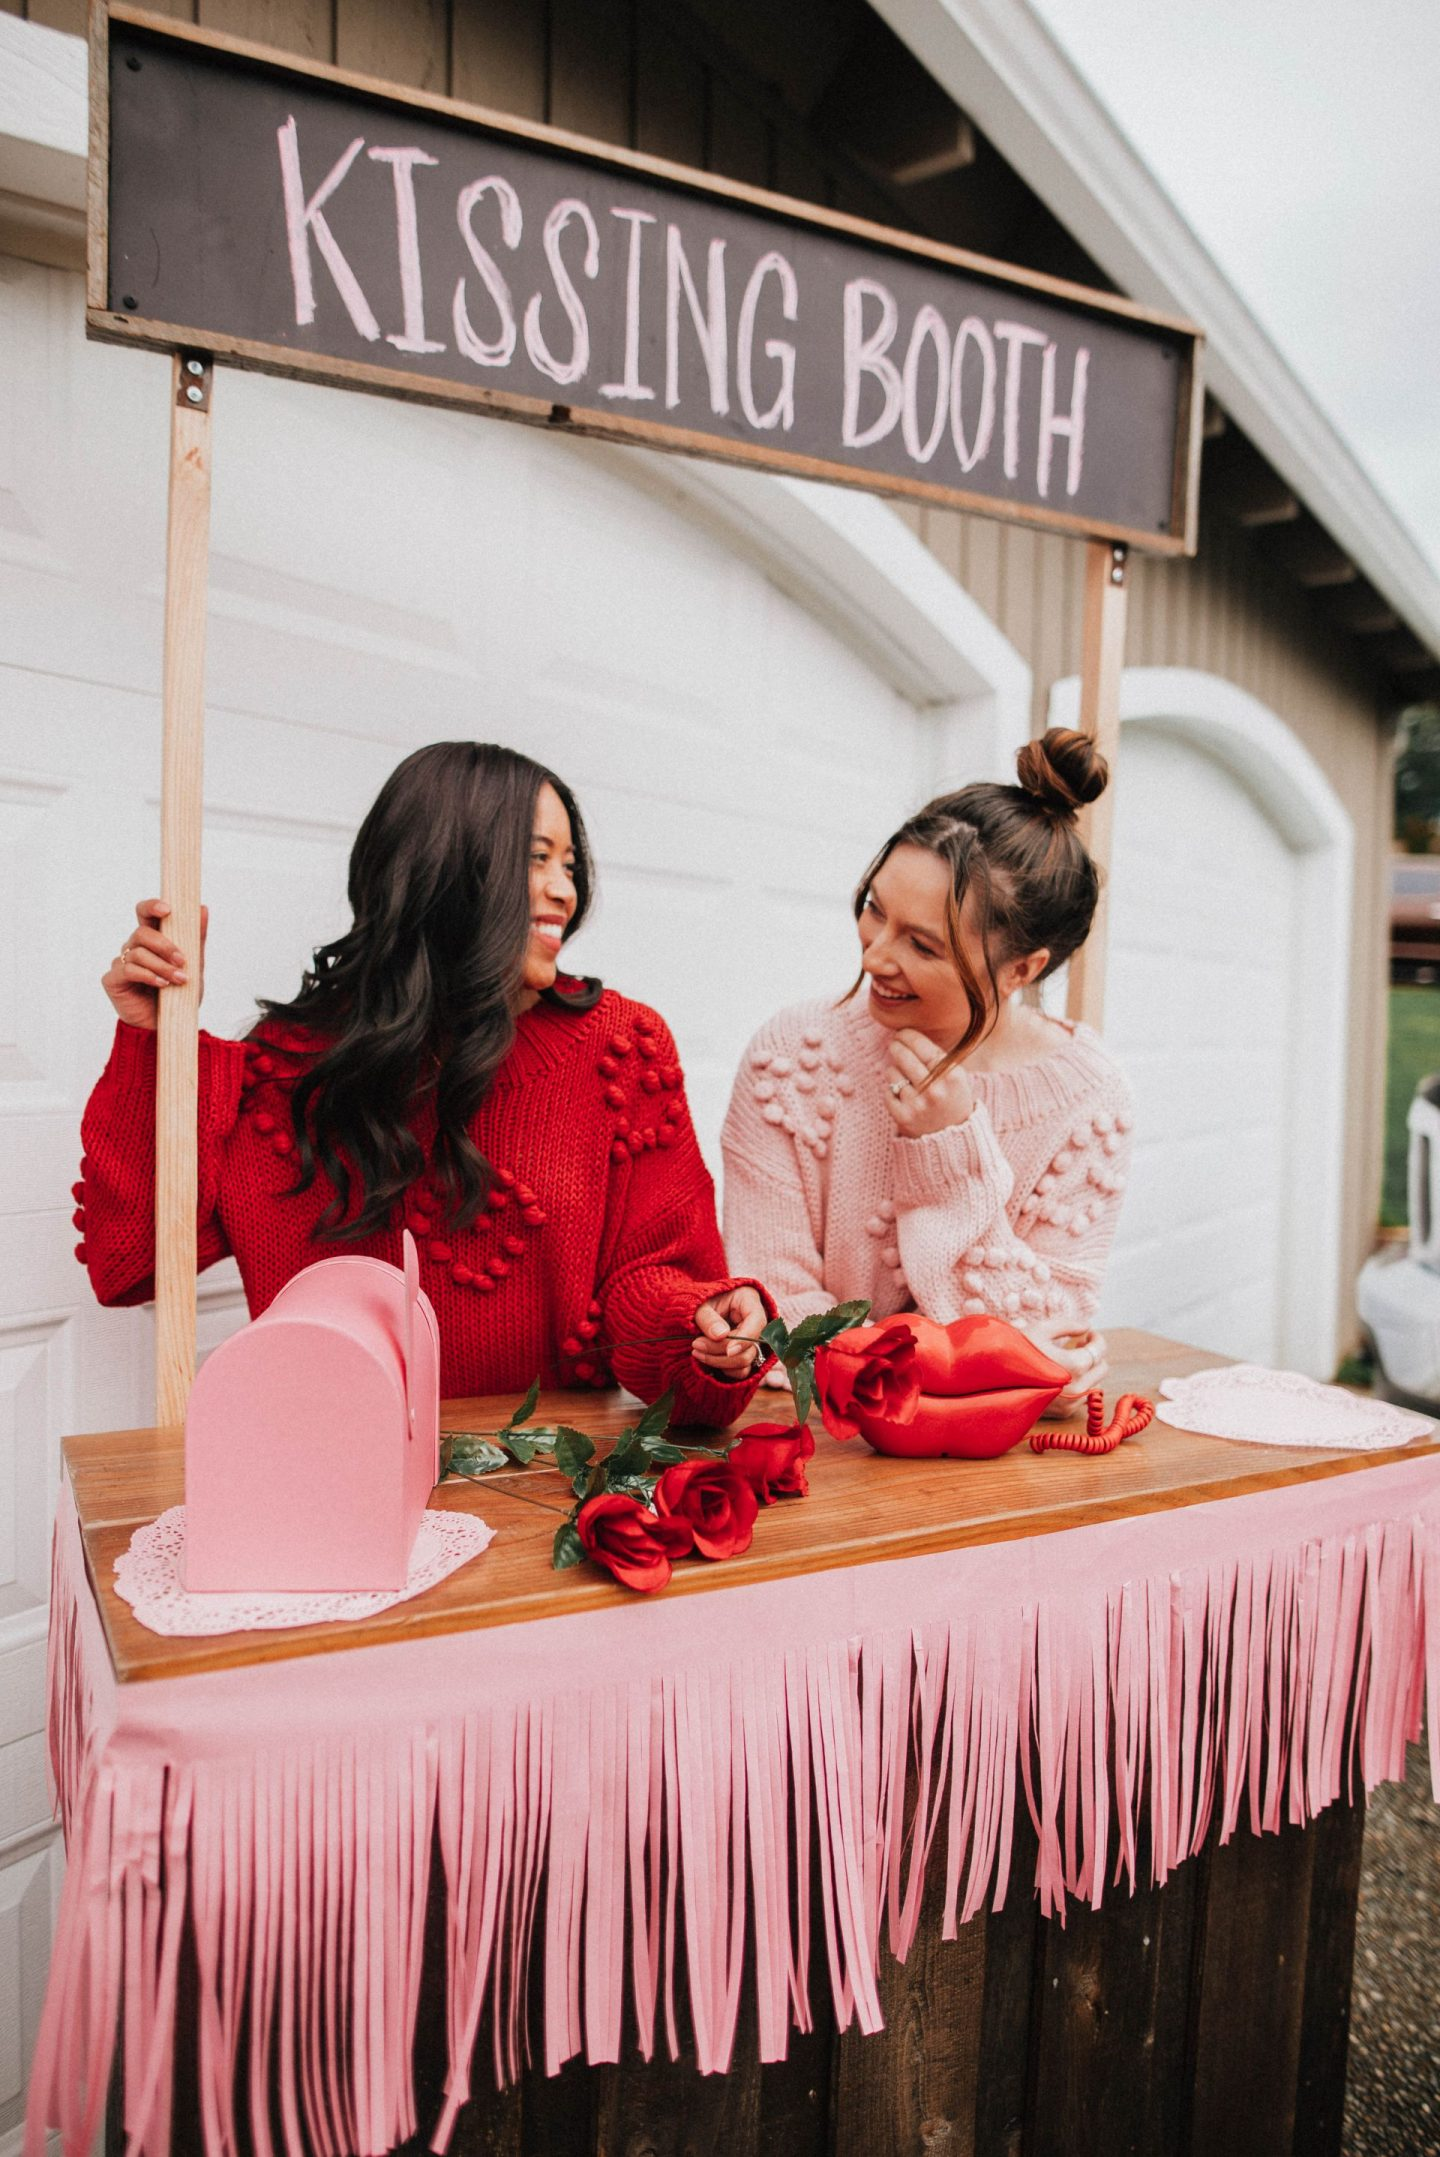 Valentine's Day posing ideas kissing booth - kissing booth photo shoot ideas - Galentine's Day photo shoot ideas - Galentine's Day poses - Galentines Day celebration - image from www.emmasedition.com - copyright @emmasedition